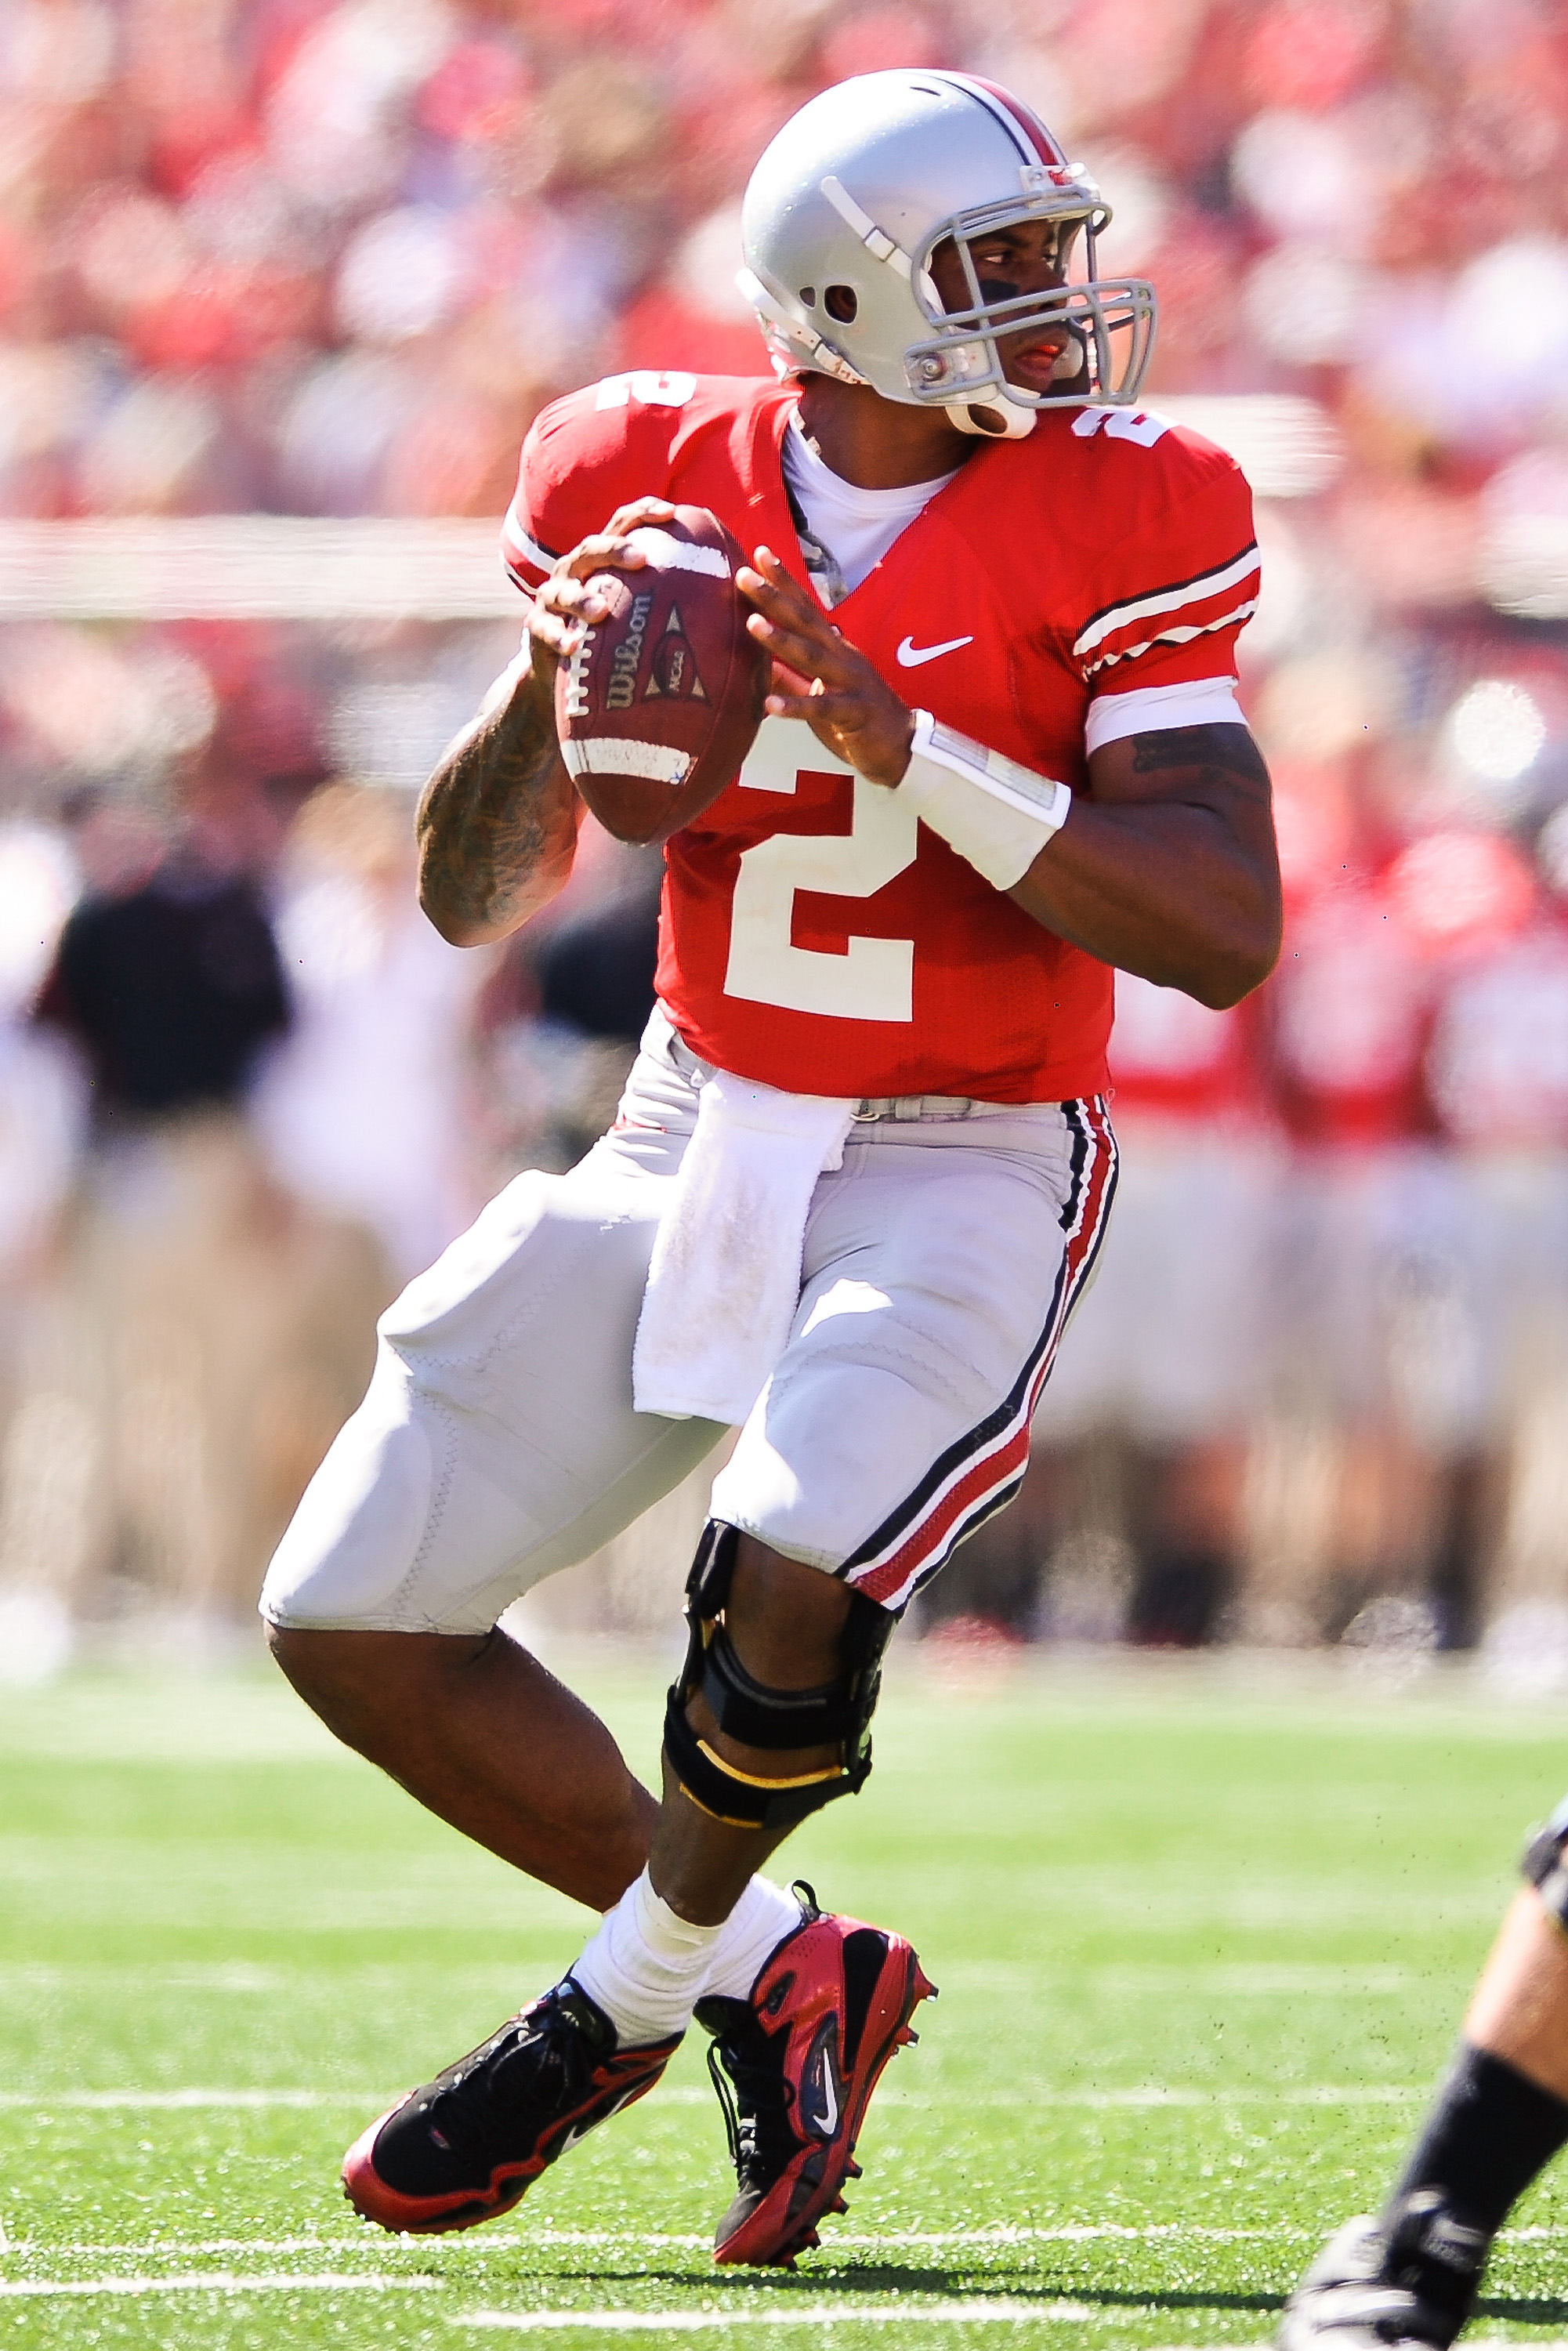 COLUMBUS, OH - OCTOBER 9:  Quarterback Terrelle Pryor #2 of the Ohio State Buckeyes drops back to pass against the Indiana Hoosiers at Ohio Stadium on October 9, 2010 in Columbus, Ohio.  (Photo by Jamie Sabau/Getty Images)